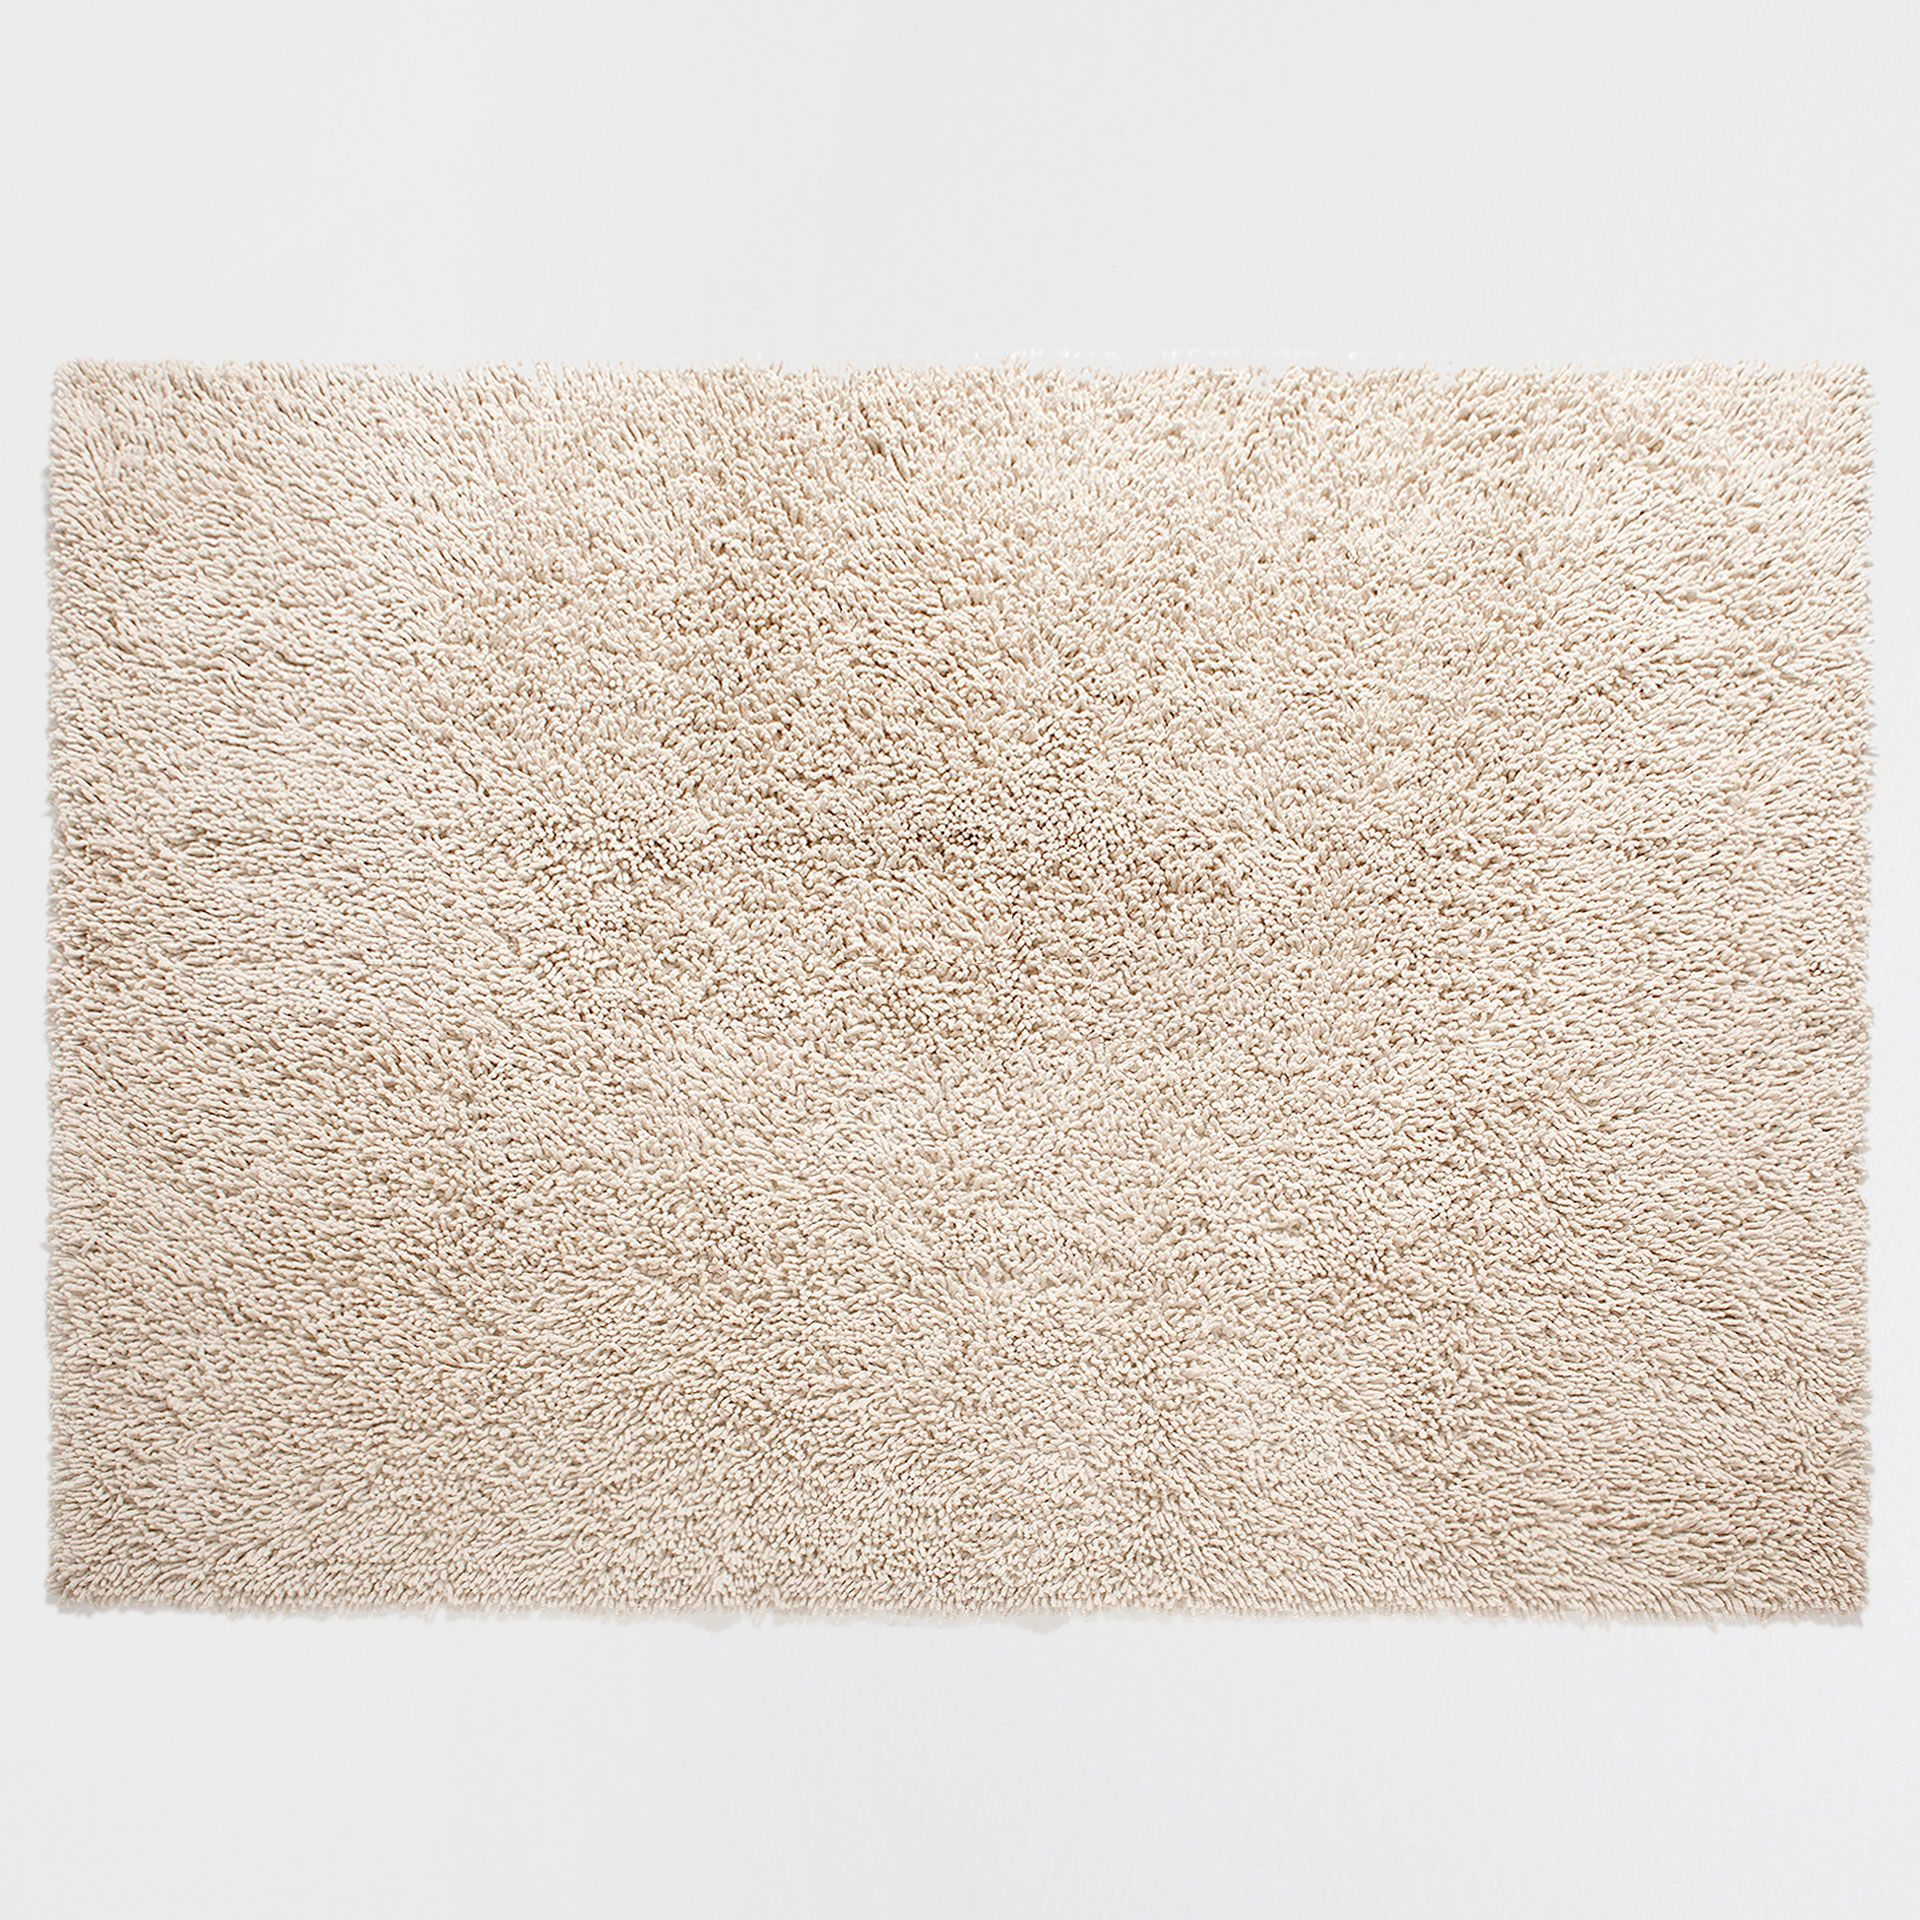 Chenille Cotton Rug Rugs Decoration Zara Home United Kingdom